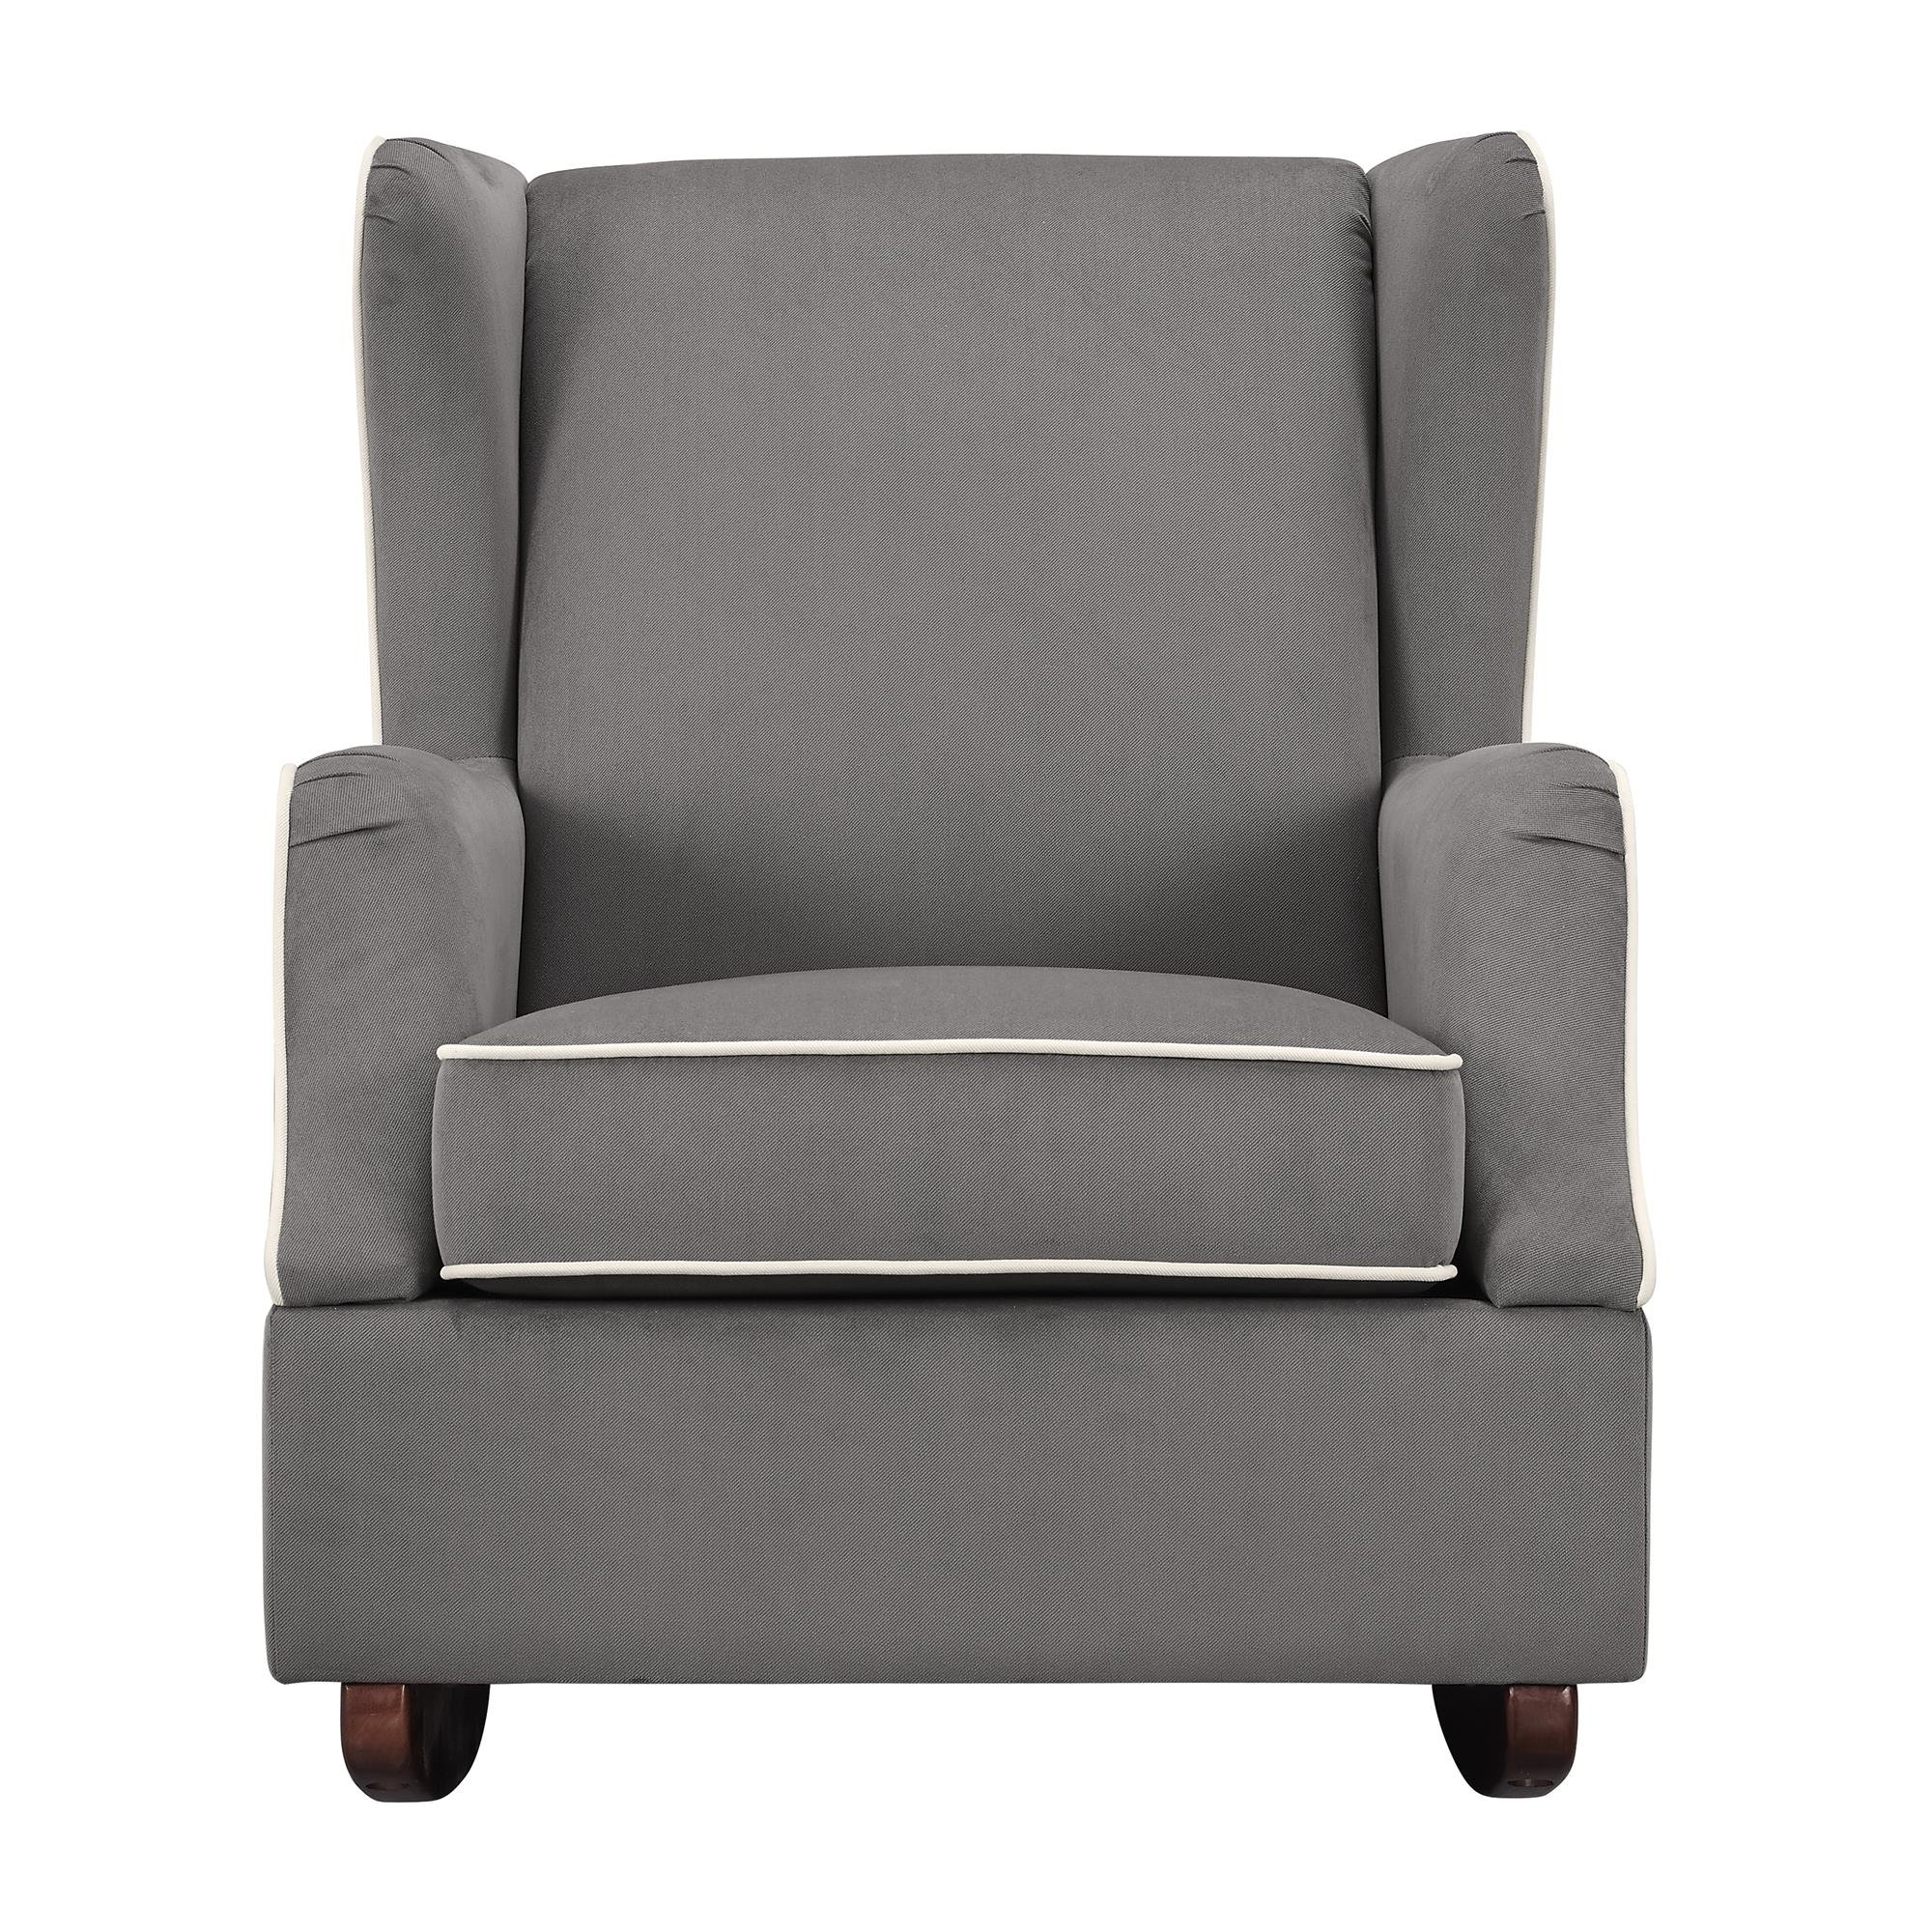 Baby Relax Hudson Upholstered Wingback Nursery Room Rocker, Graphite Gray Gray by Baby Relax